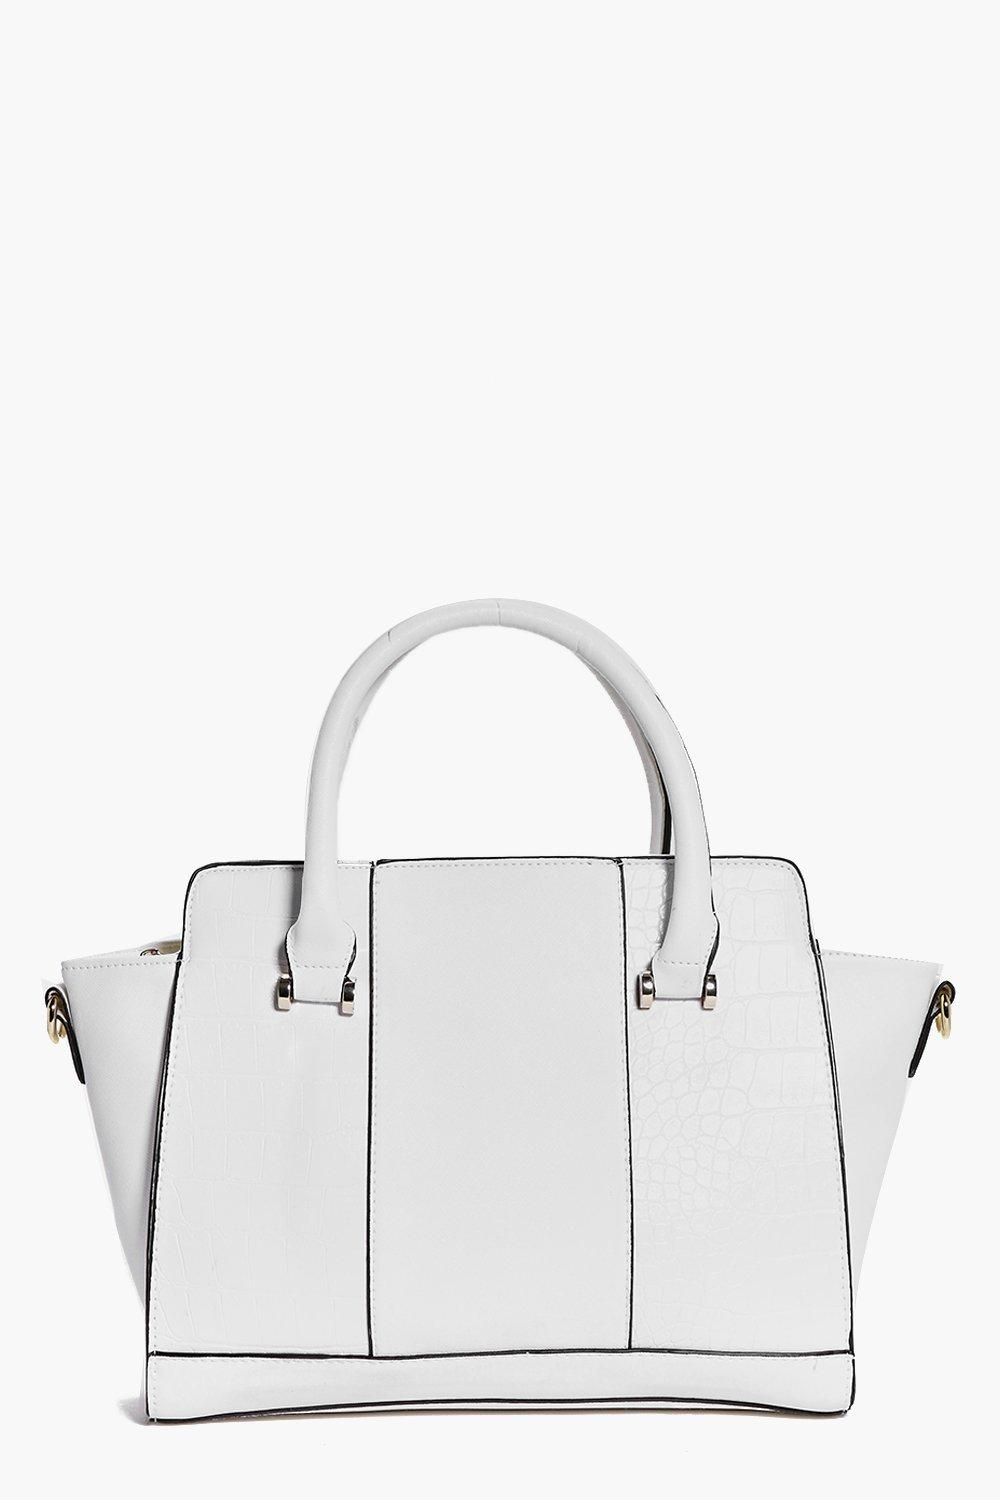 Structured Day Bag white